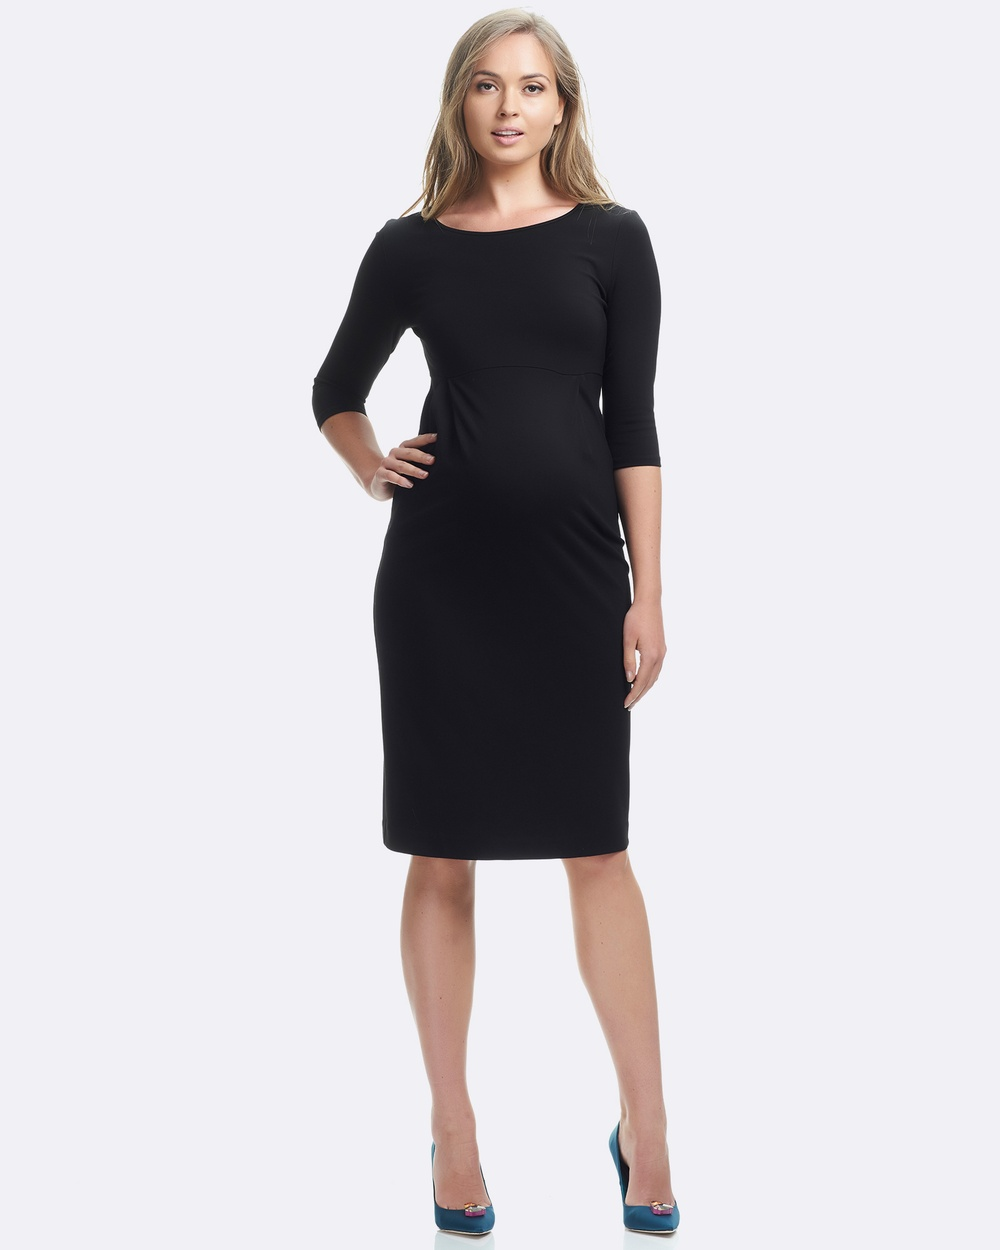 Soon Maternity Annie 3 4 Sleeve Dress Dresses Black Annie 3-4 Sleeve Dress